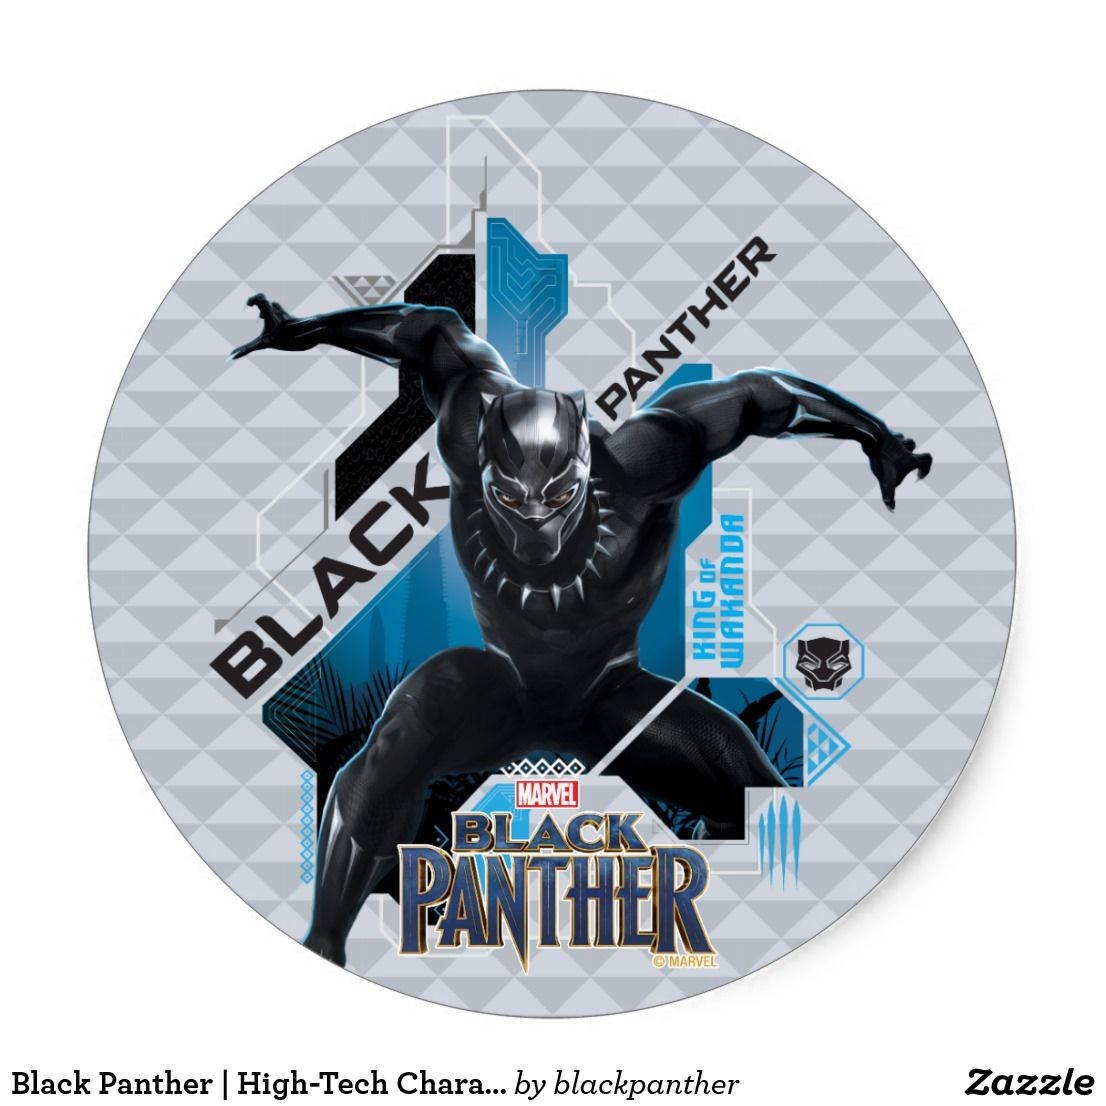 Black panther high tech character graphic blackpanther marvel comics marvelcomics